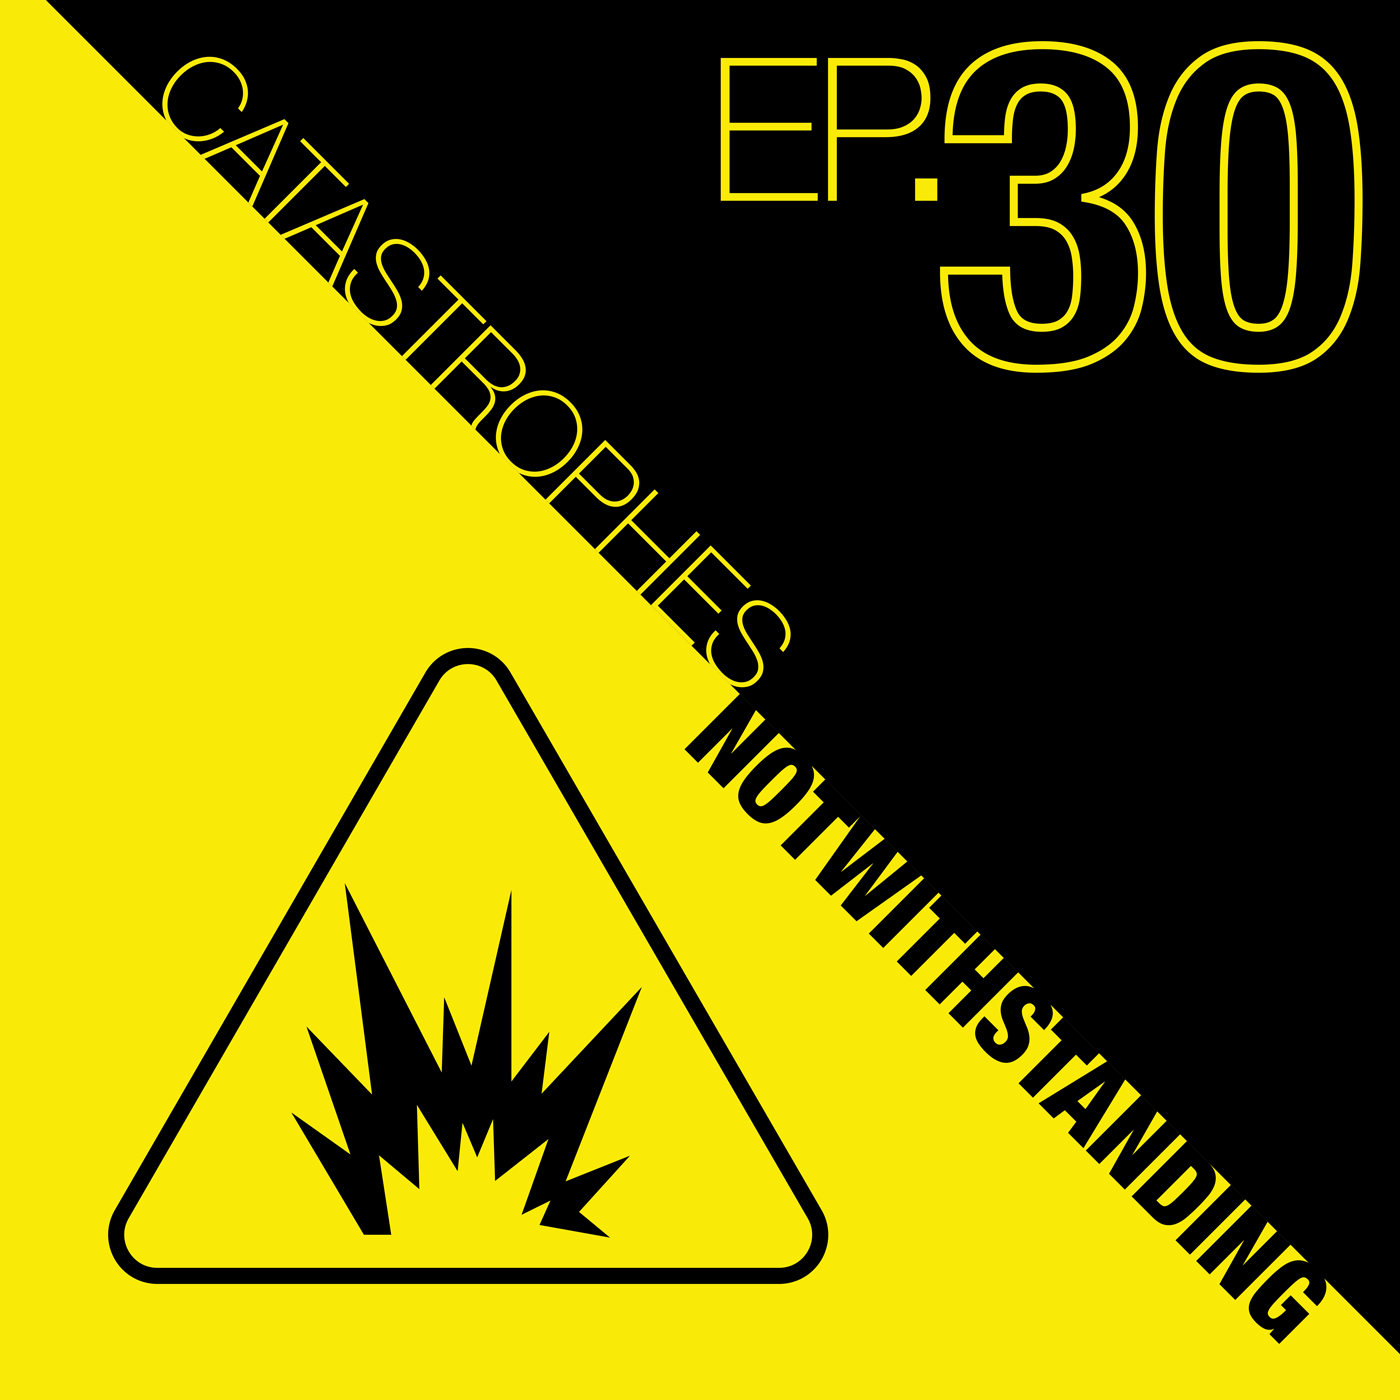 Cover Image of Catastrophes Notwithstanding Episode 30